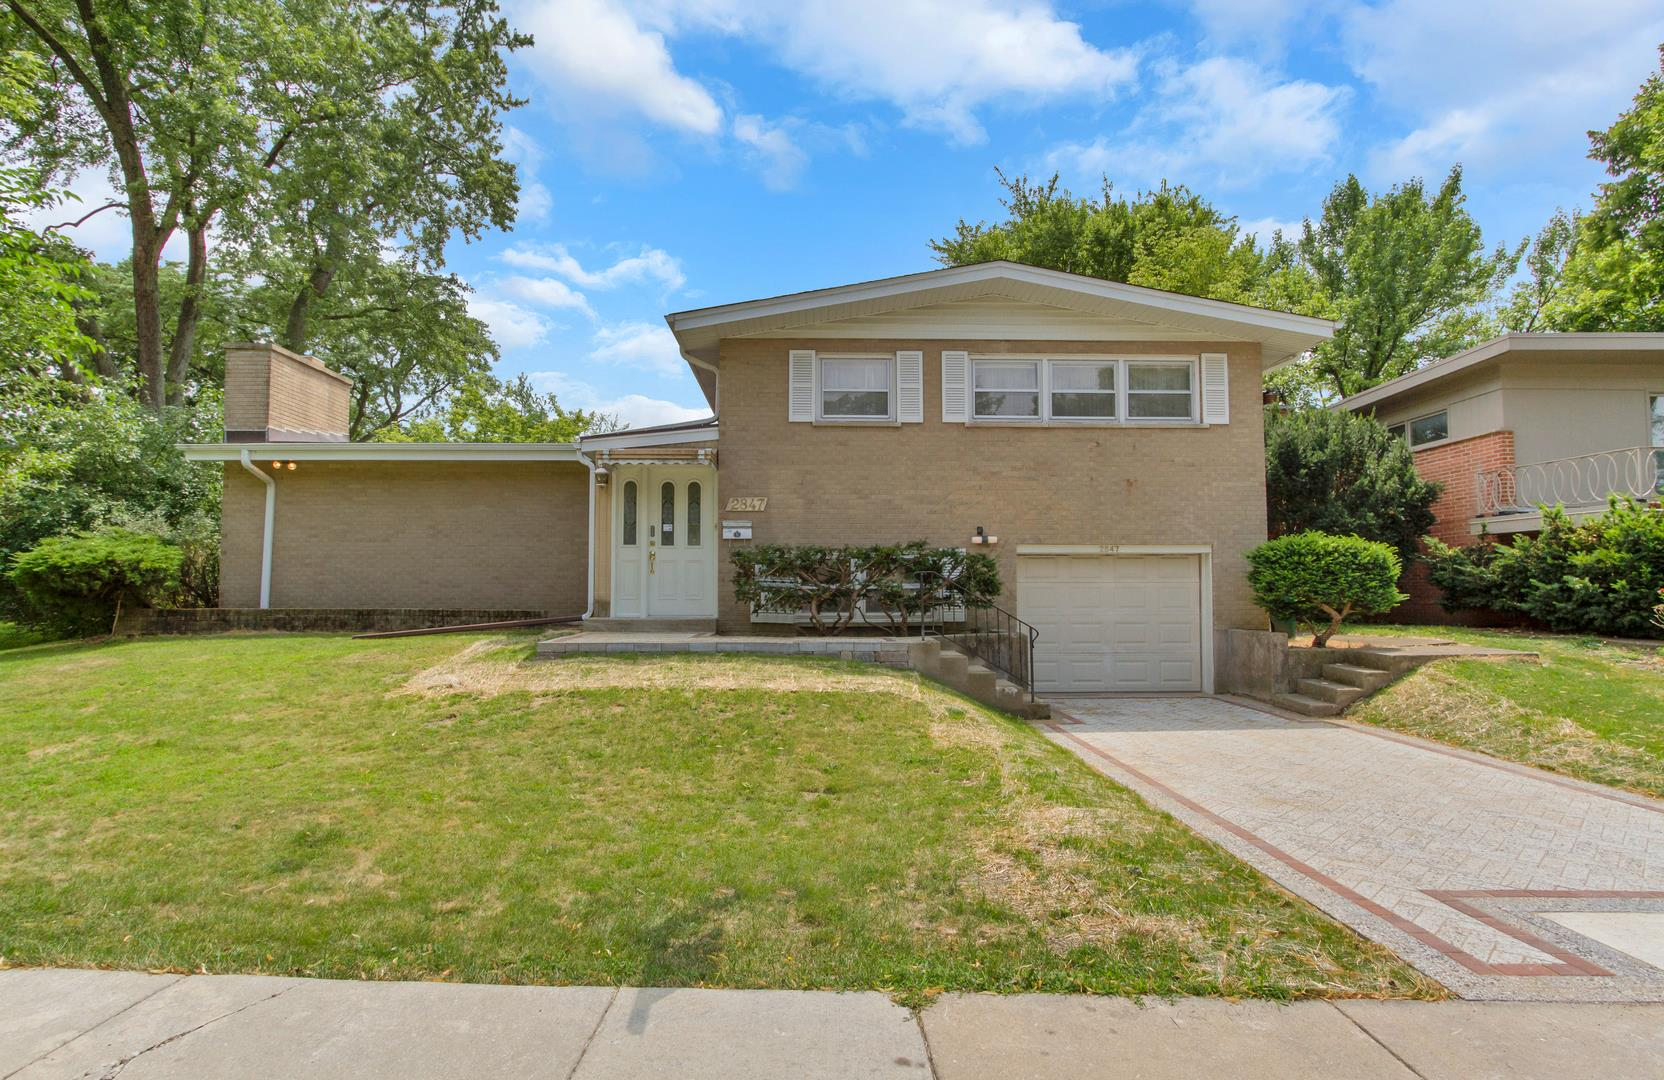 2847 Birchwood Avenue, Wilmette, IL 60091 - #: 11021118